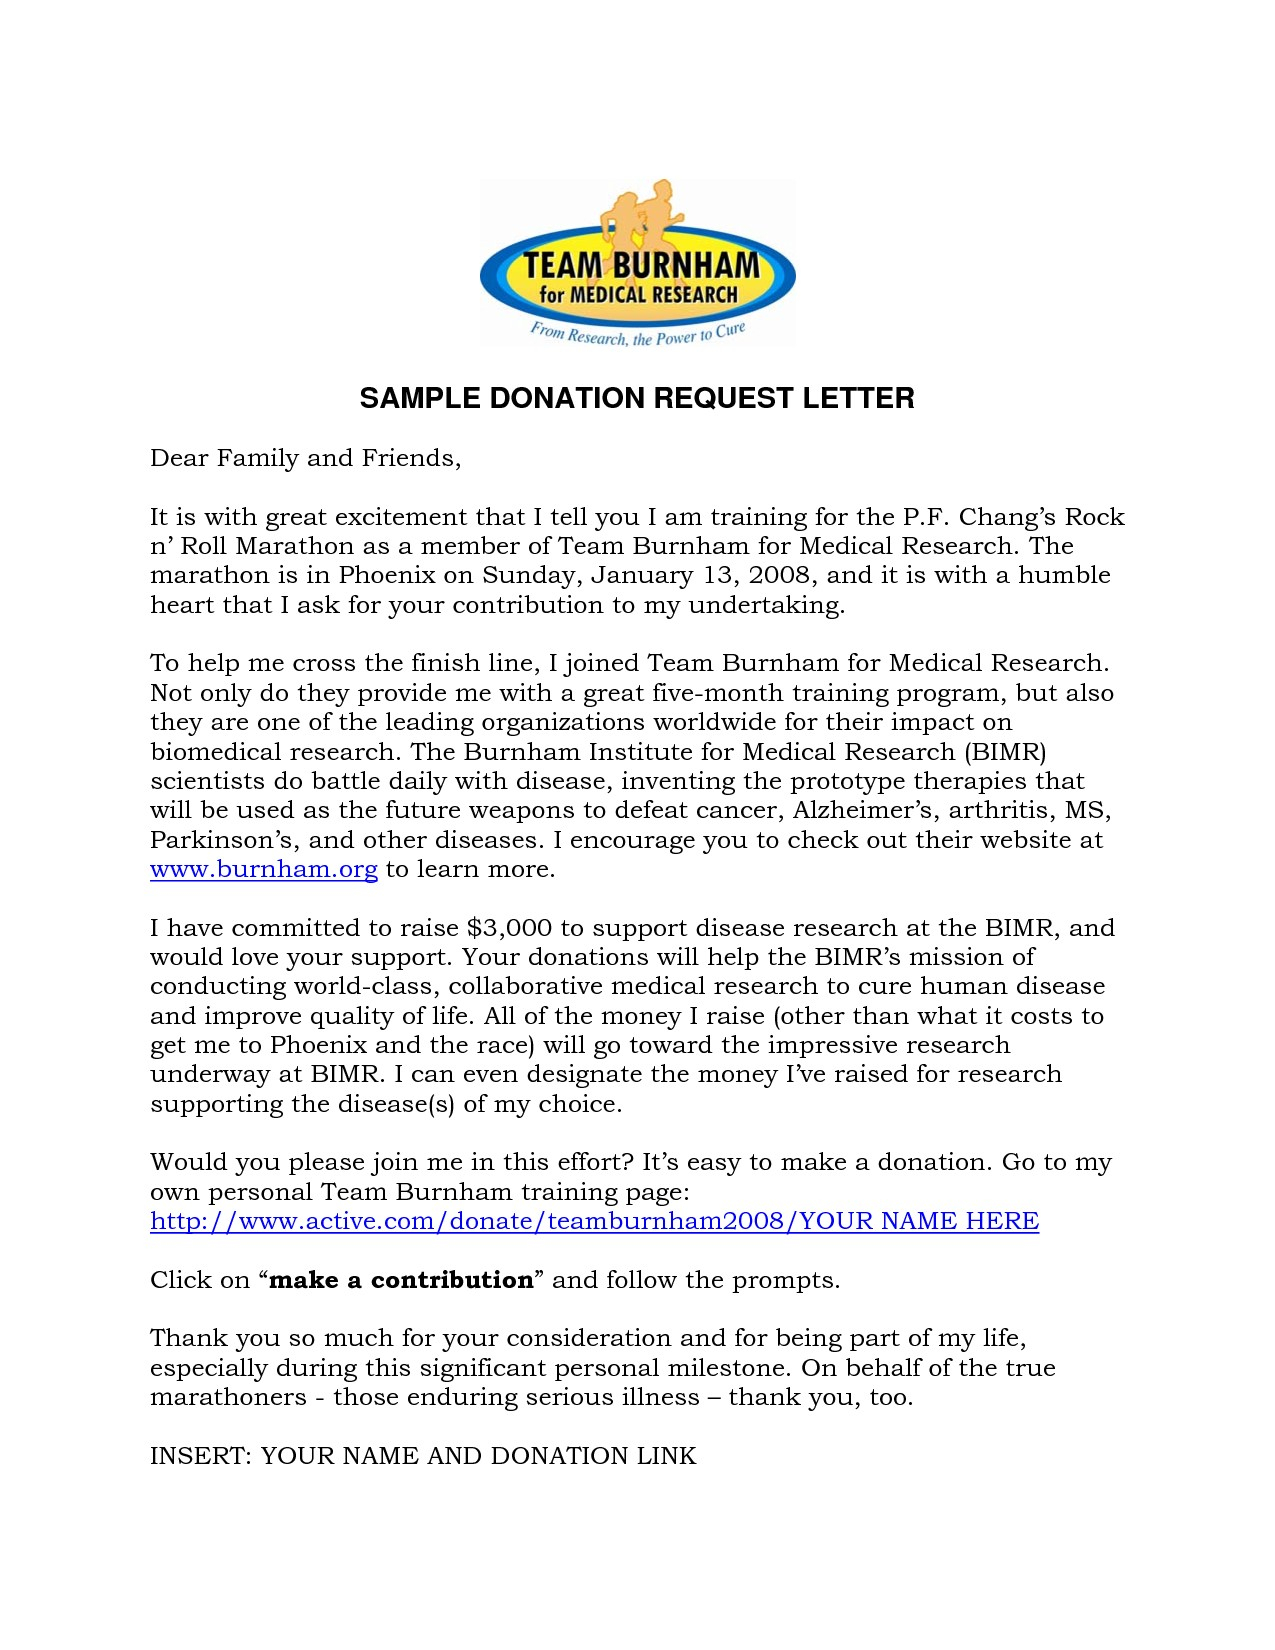 Letter for Donations for Fundraiser Template - Sponsorship Request Letter Pdf New Sample Donation Request Letter